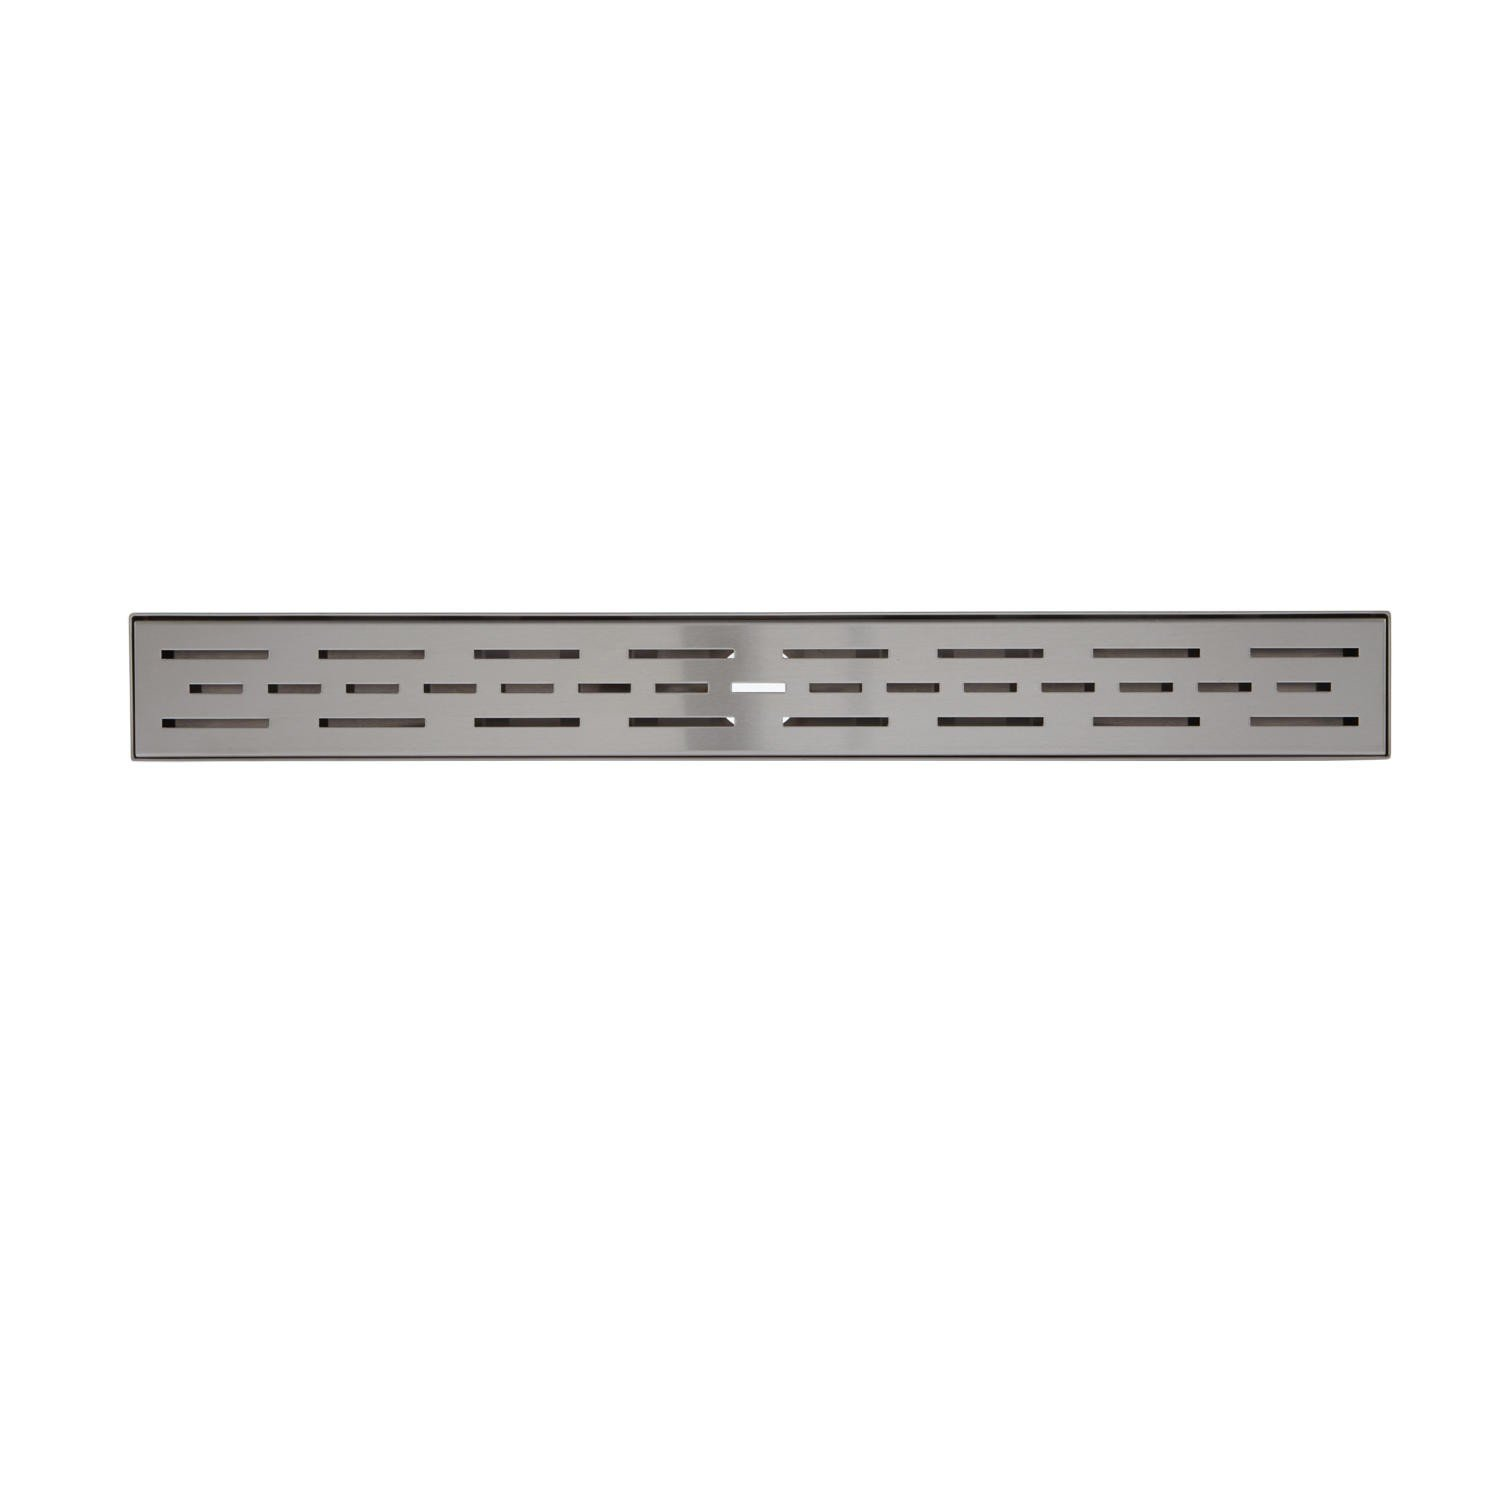 "hot sale 2017 Naiture 32"" Stainless Steel Linear Shower Floor Drain Without Drain Flange In Brushed Stainless Steel Finish"